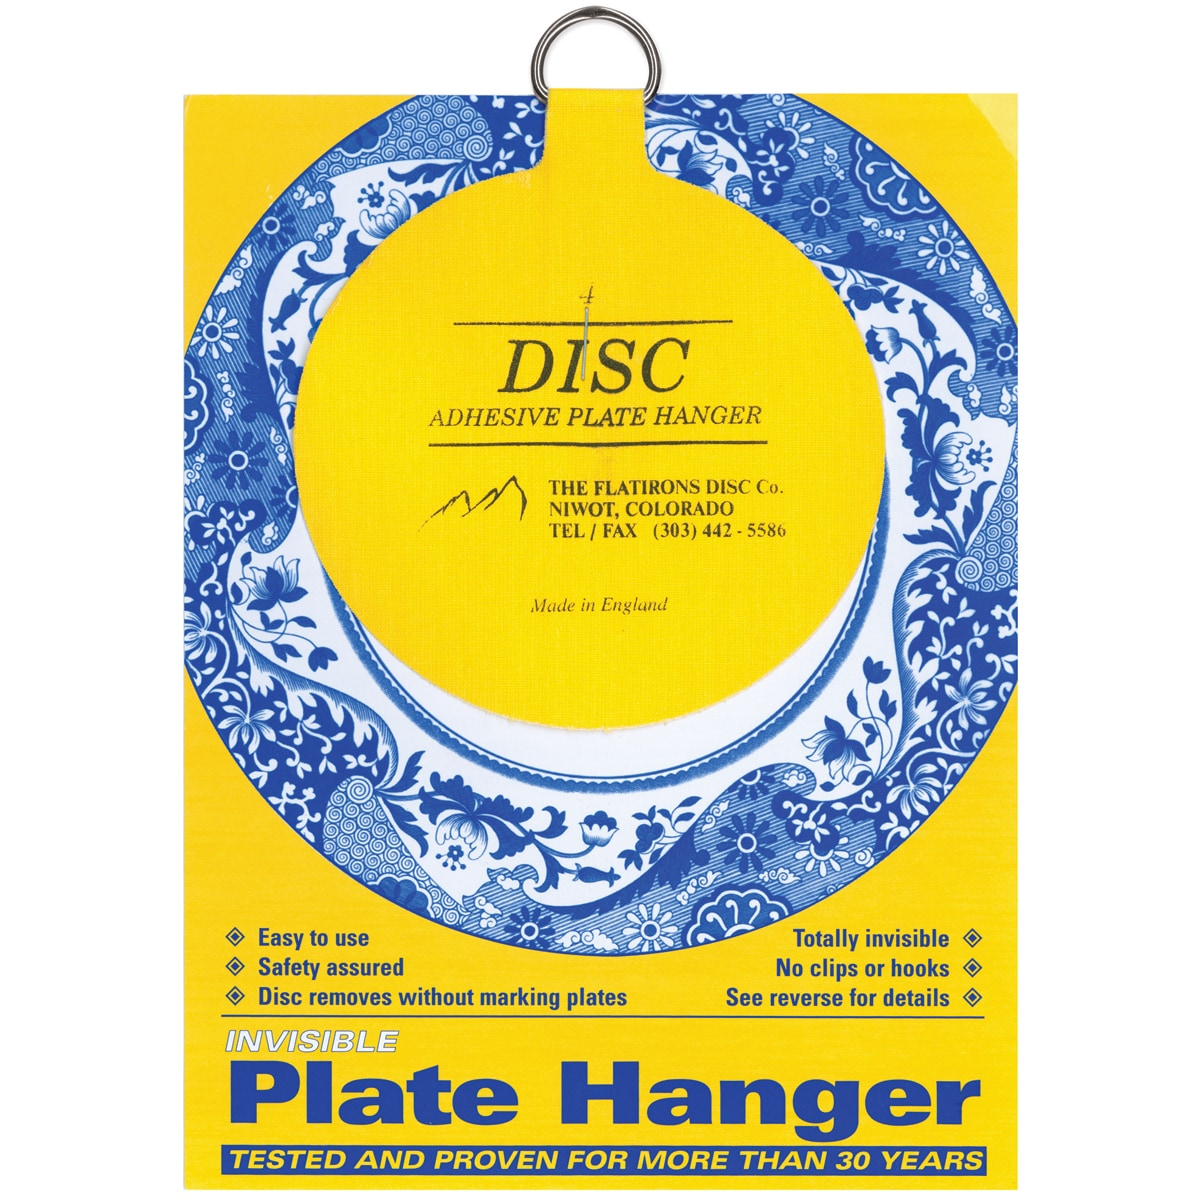 Flatiron Disc Invisible Plate Hanger 4  For Plates Up To 12  (300mm) Diameter - Walmart.com  sc 1 st  Walmart & Flatiron Disc Invisible Plate Hanger 4